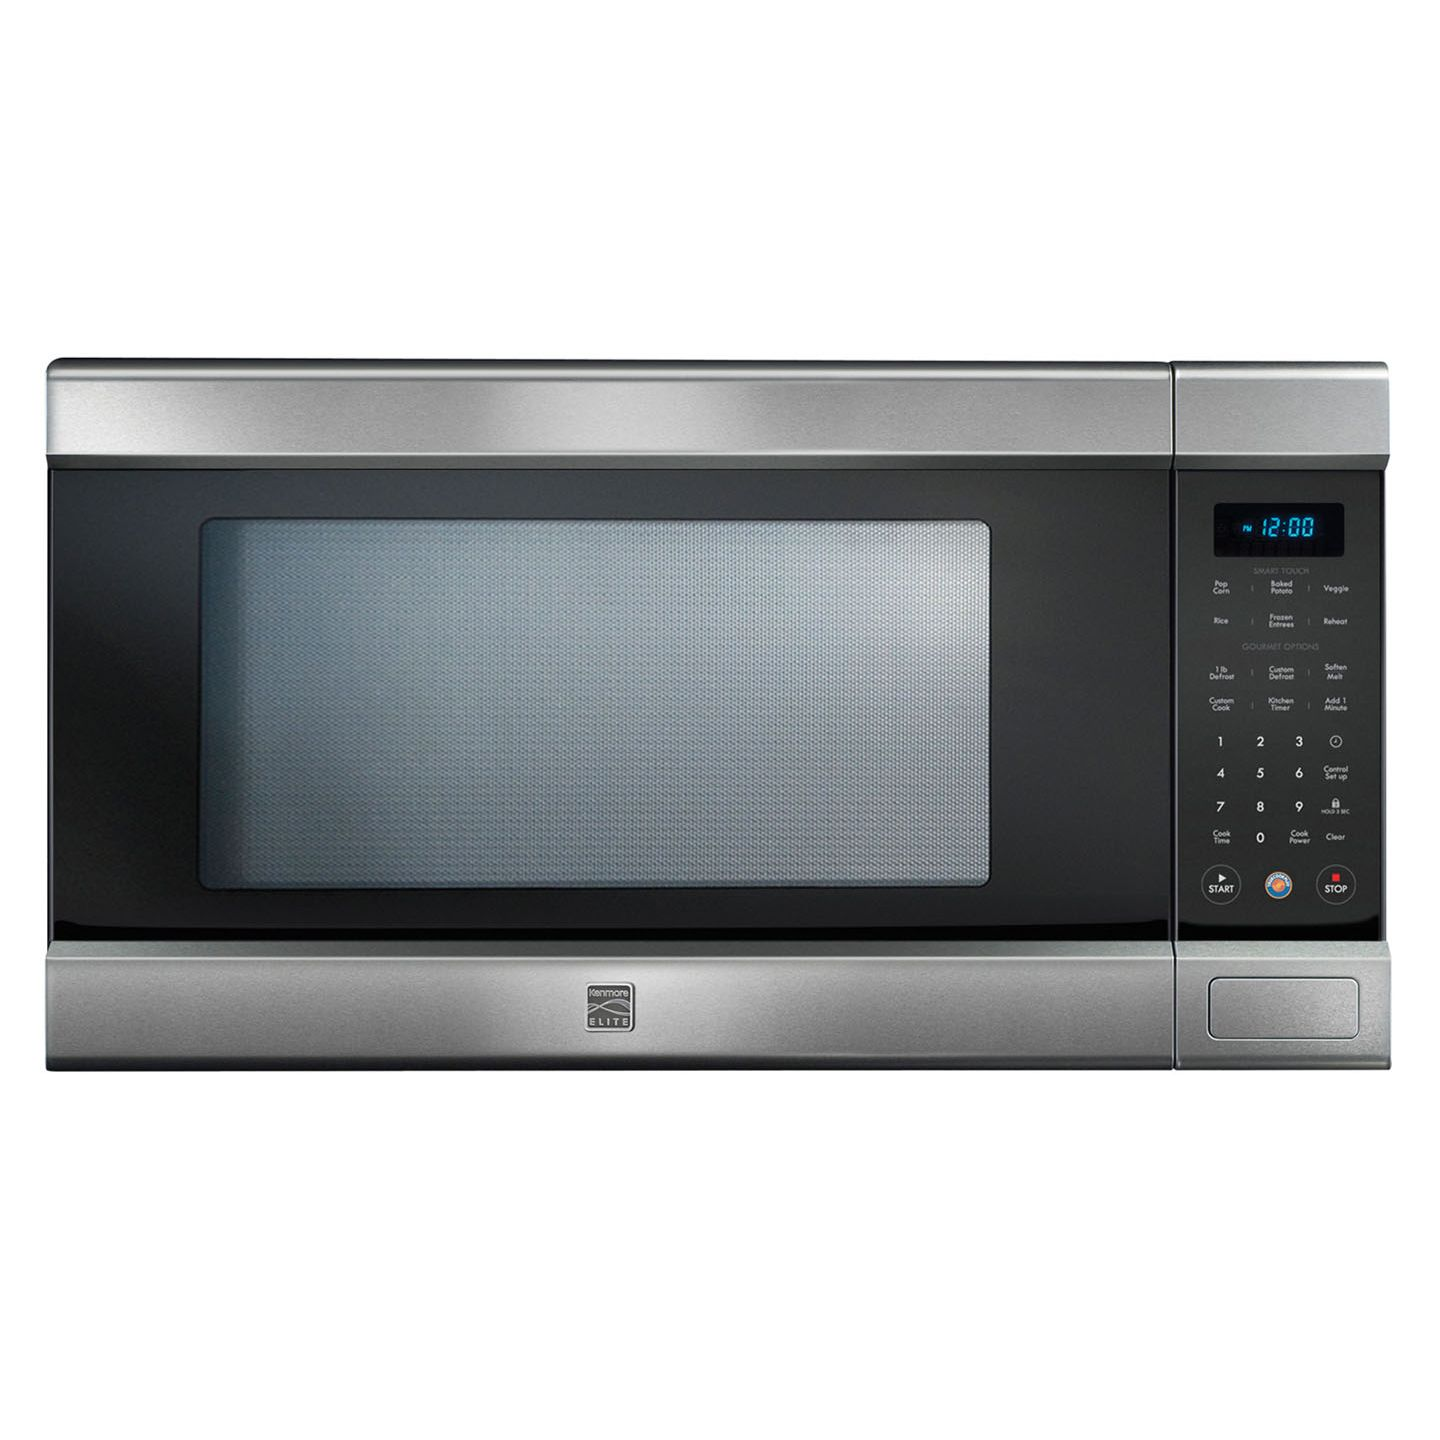 2.0 cu. ft. Countertop Microwave                                                                                                 at mygofer.com